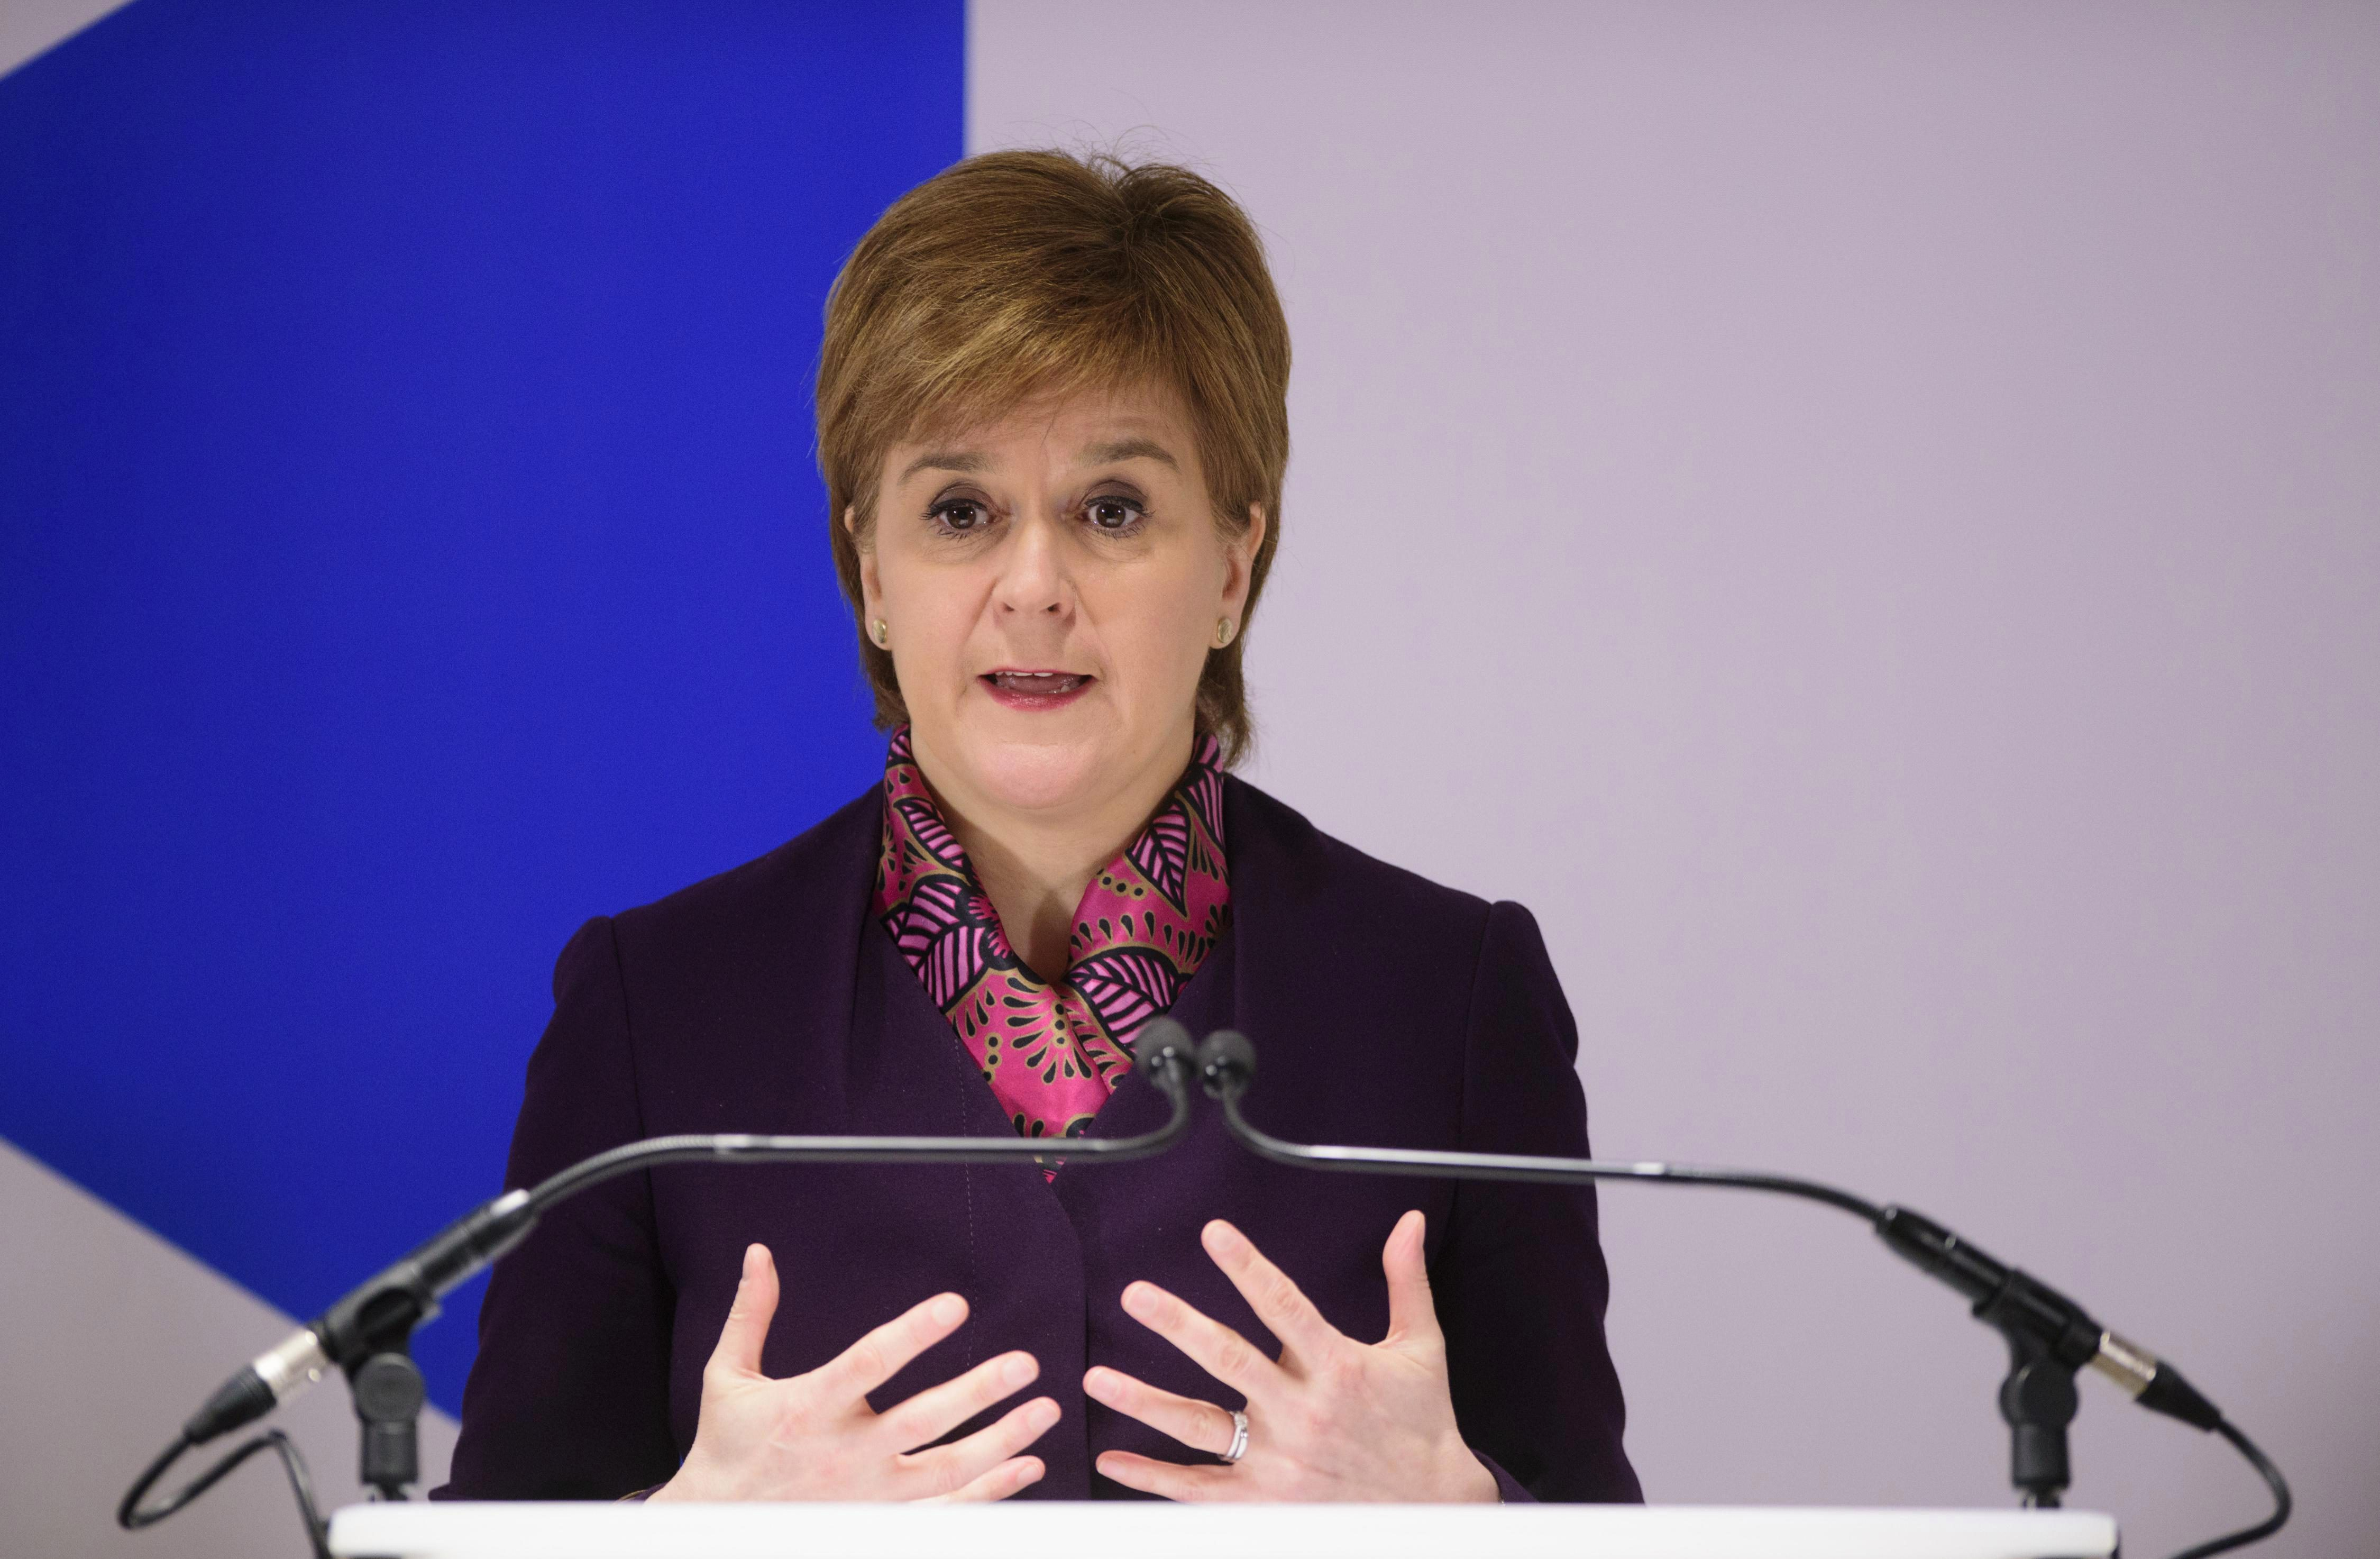 Nicola Sturgeon plots to 'eradicate' the Union flag and will refuse to fly it for the Queen's birthday